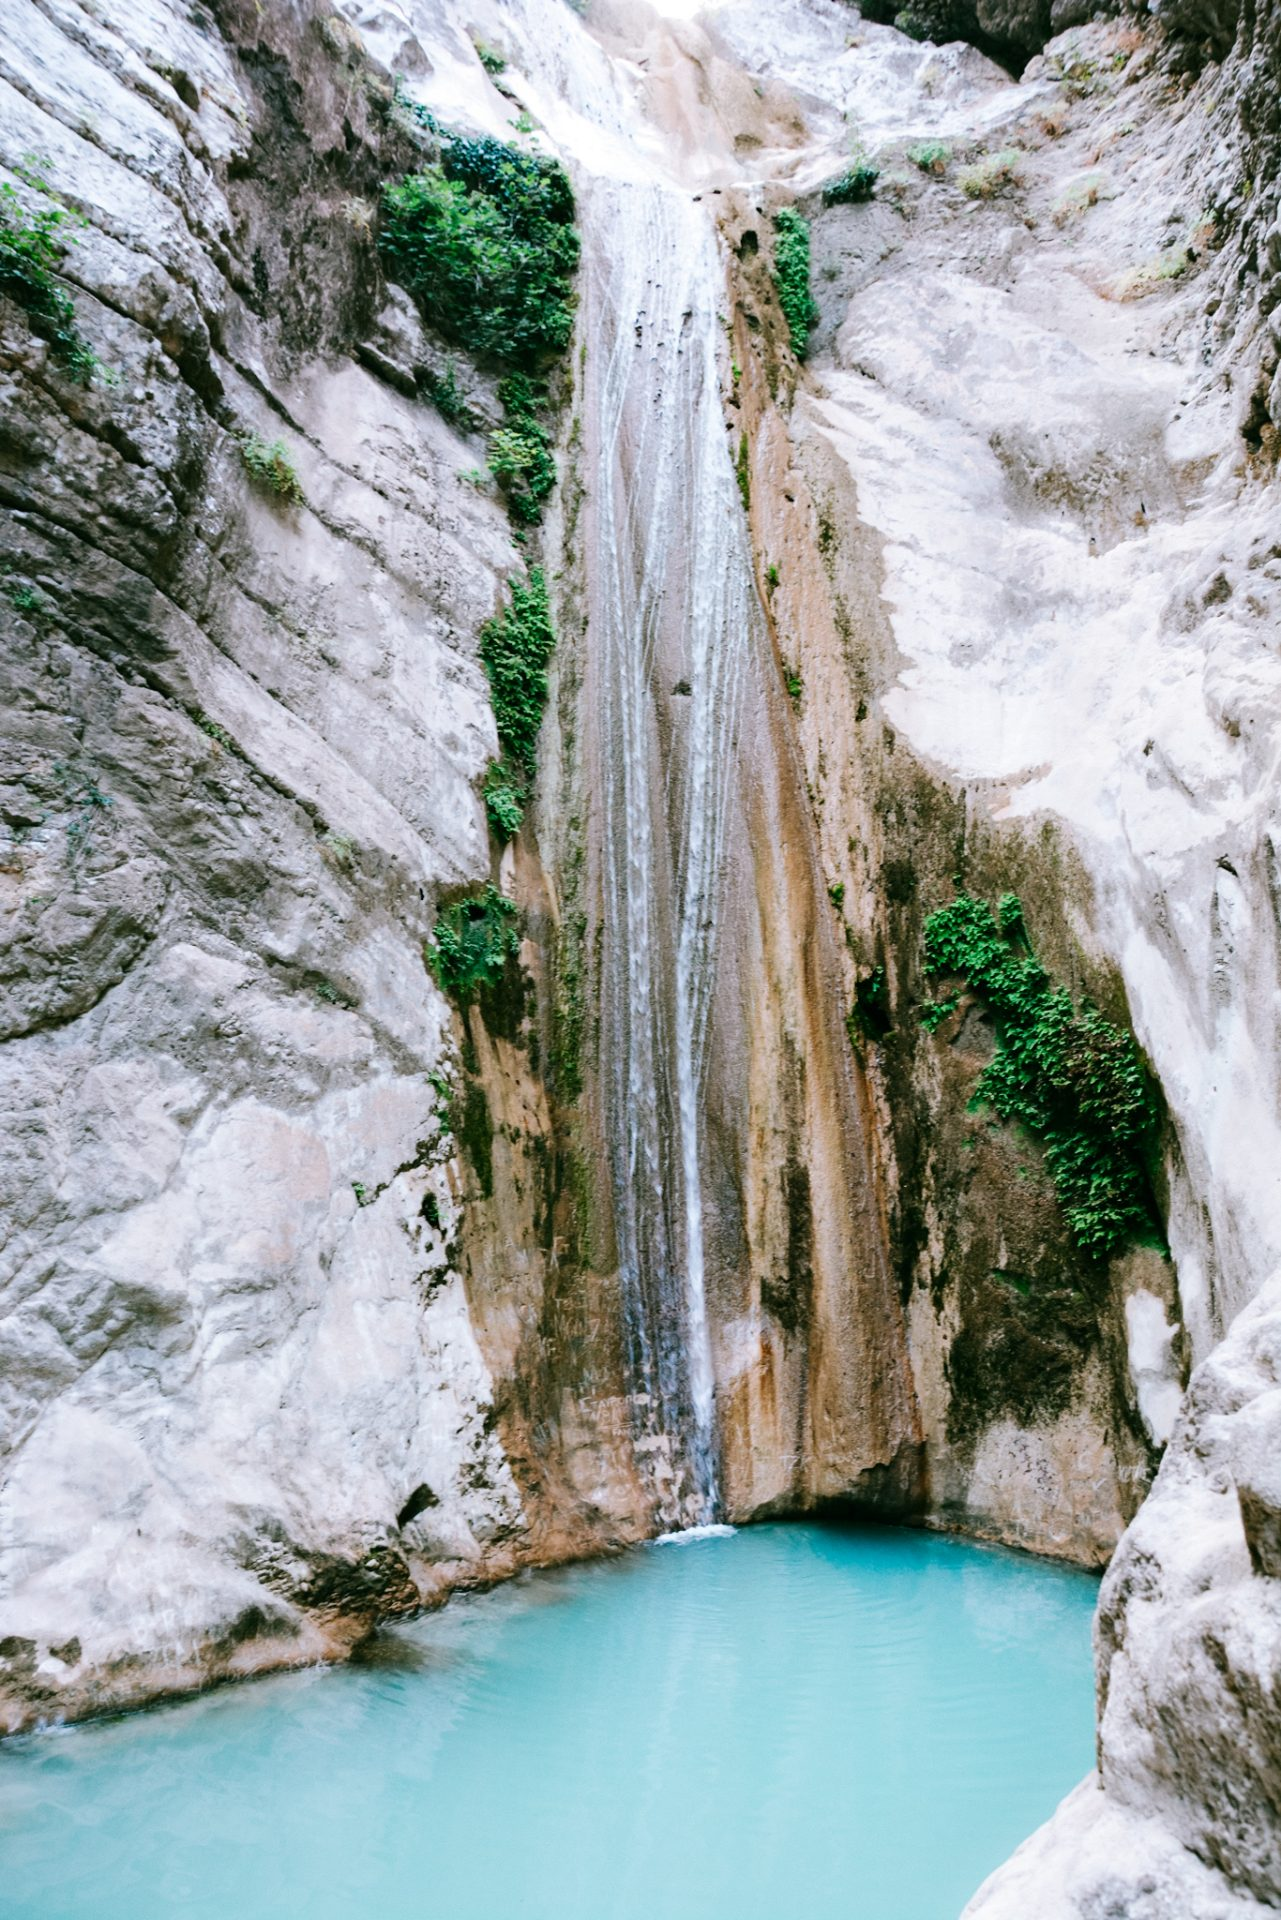 Nydri waterfalls in Lefkada